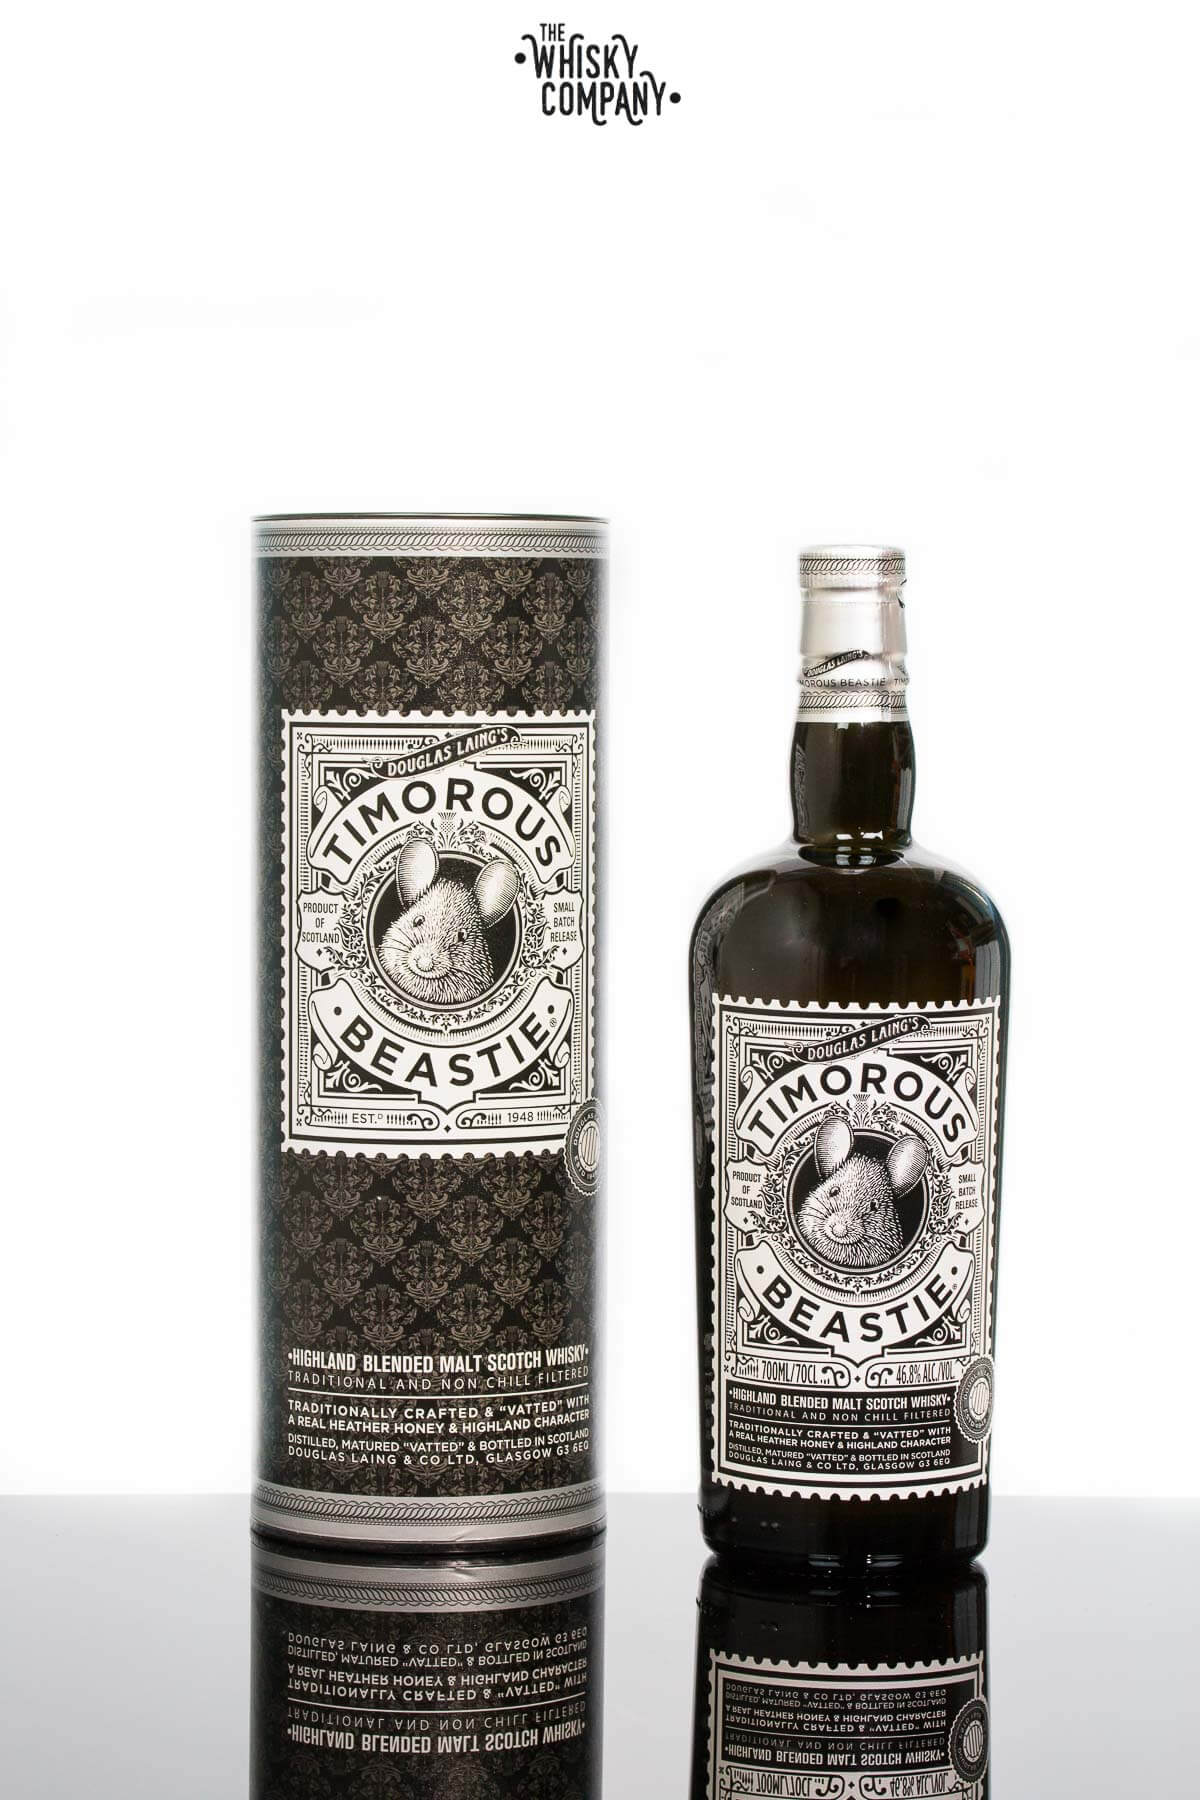 Douglas Laing's Timorous Beastie Small Batch Highland Blended Malt Scotch Whisky